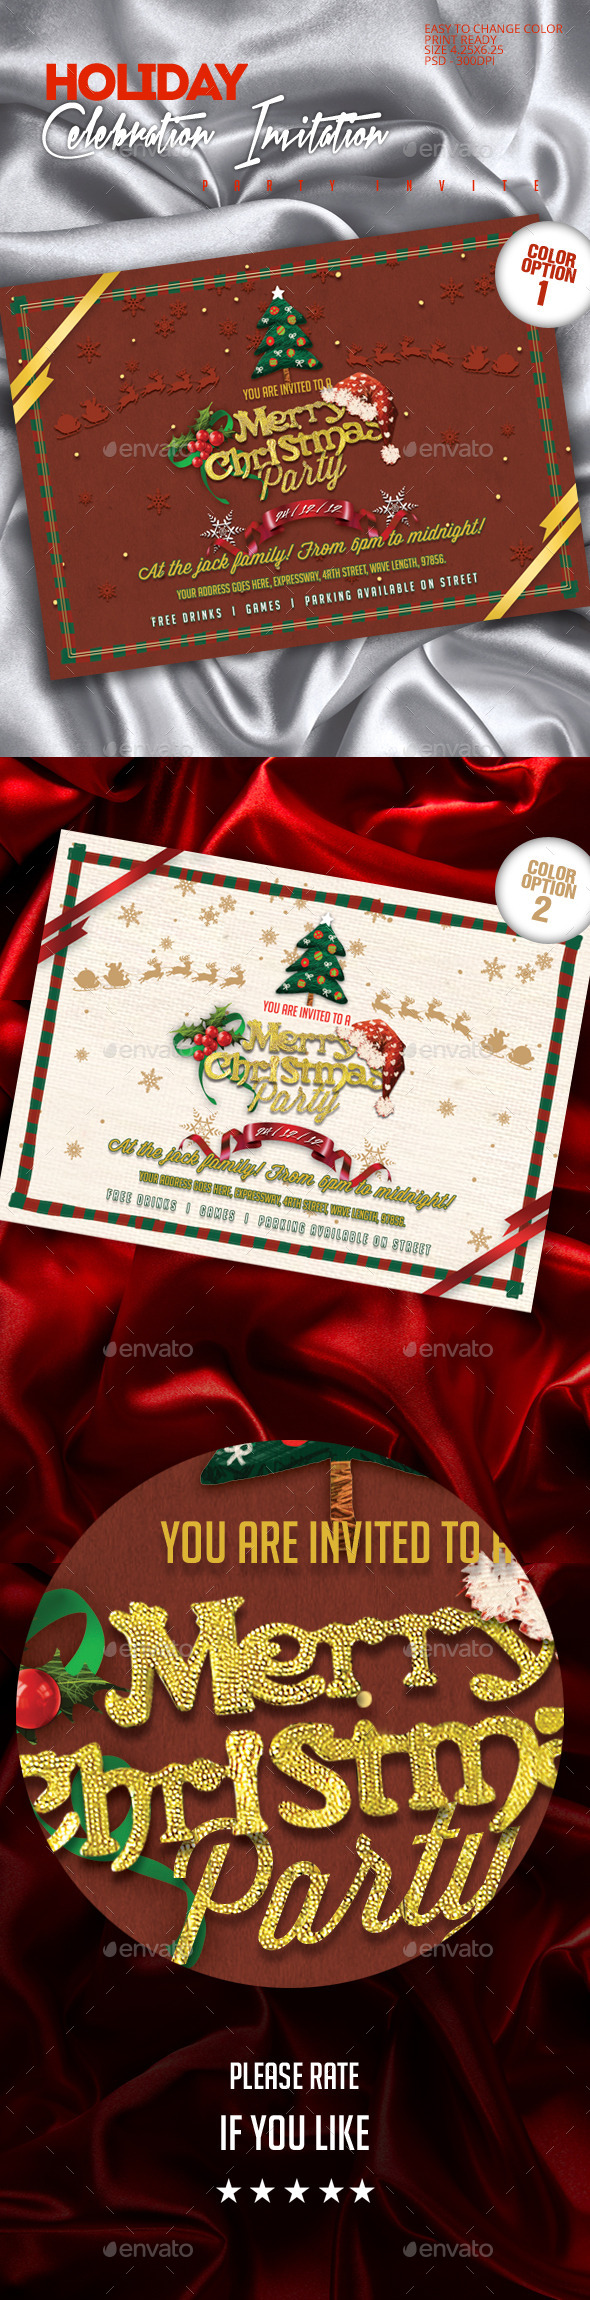 Christmas Party Invite Template - Invitations Cards & Invites